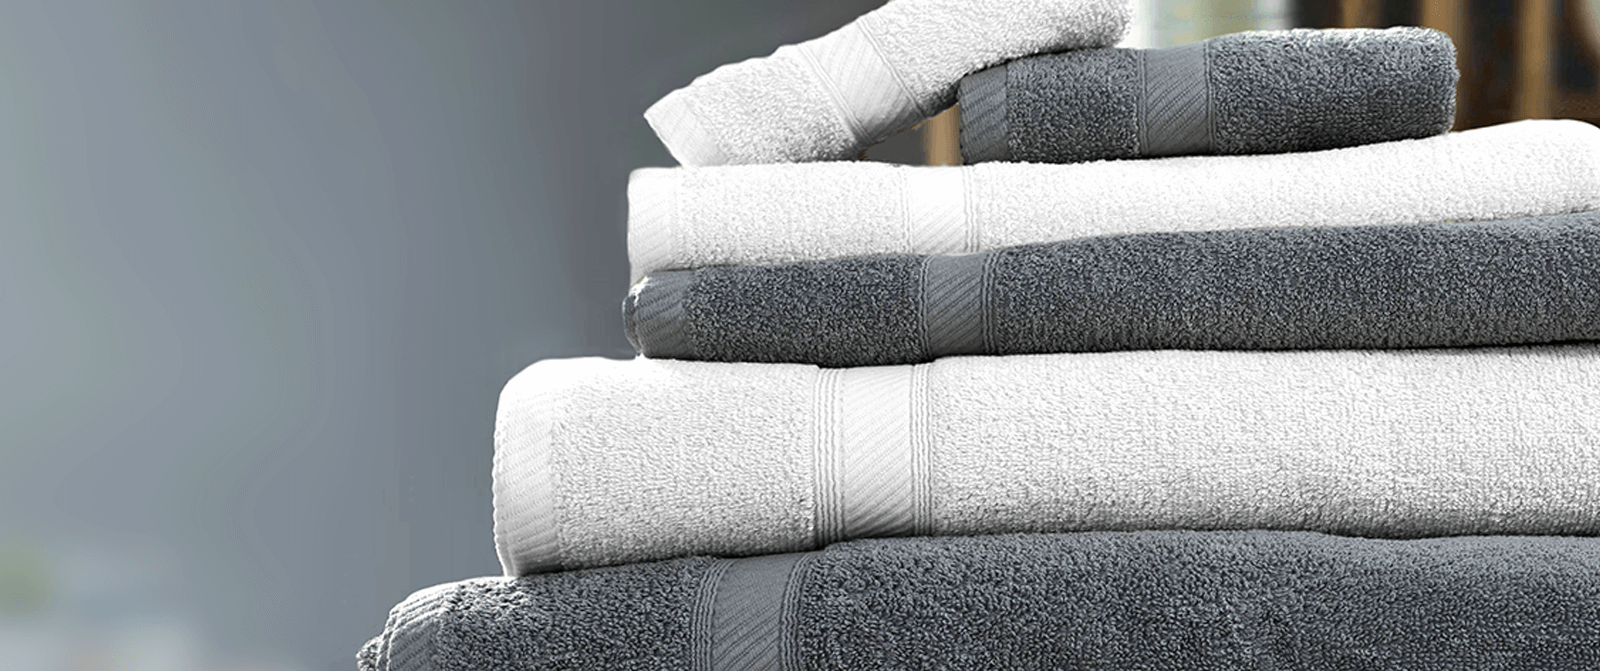 The Best Towel Buying Guide